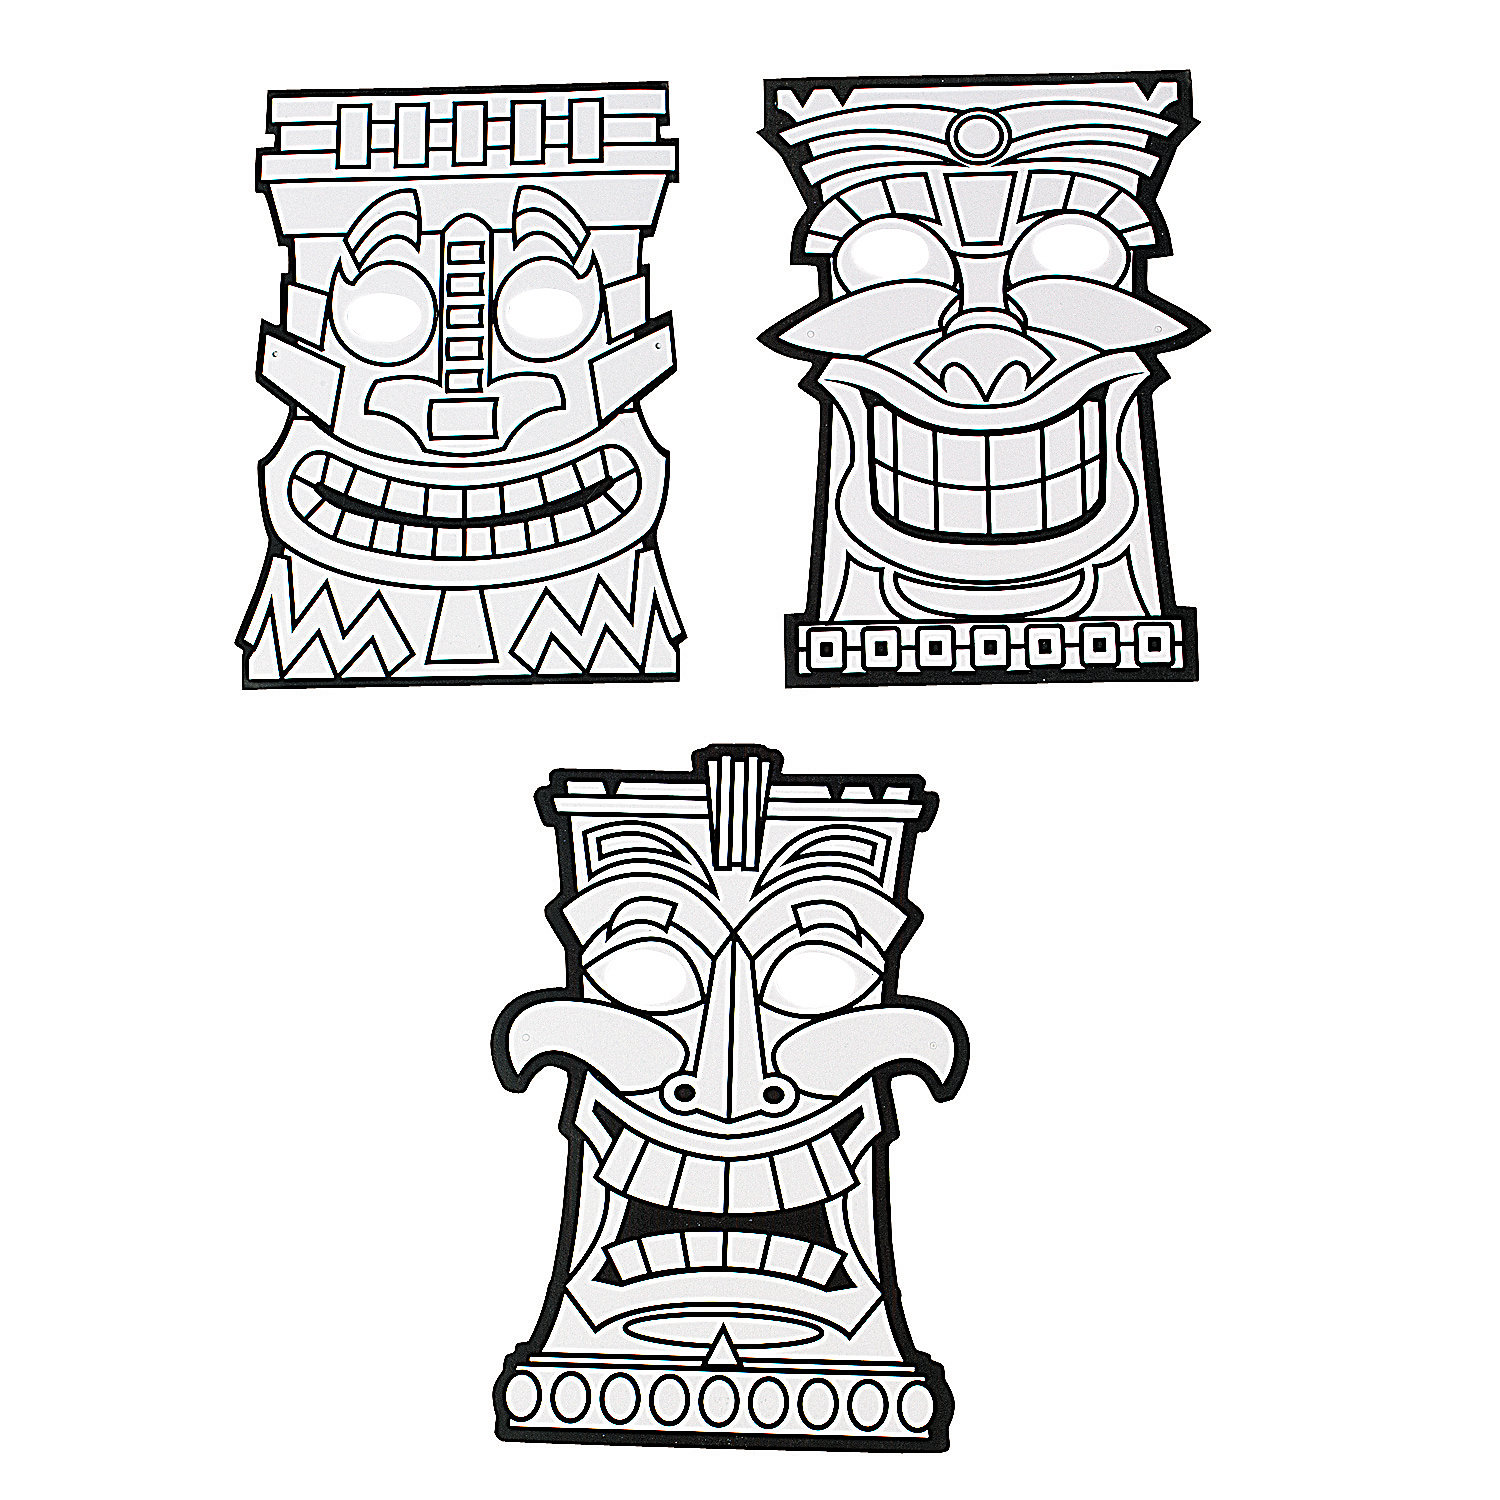 1500x1500 Adult ~ Tiki Coloring Pages Tiki Mask Totem Pole Dk For Kids Dk